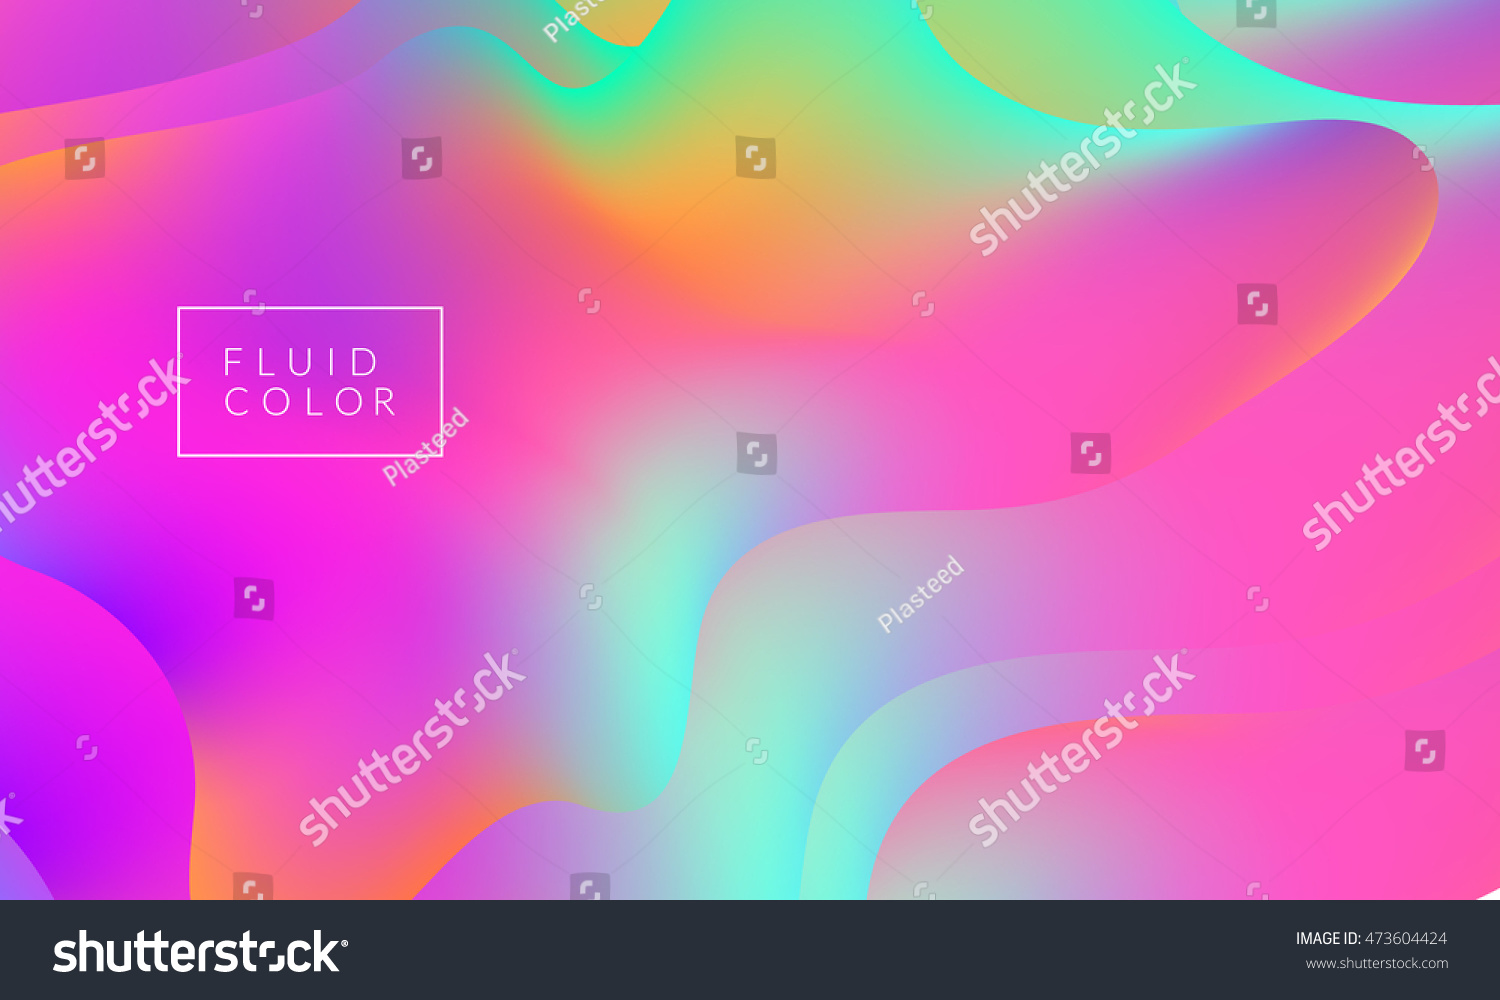 Fluid Colors Wallpaper Bright Colorful Shapes Overlap Eps10 Vector Illustration